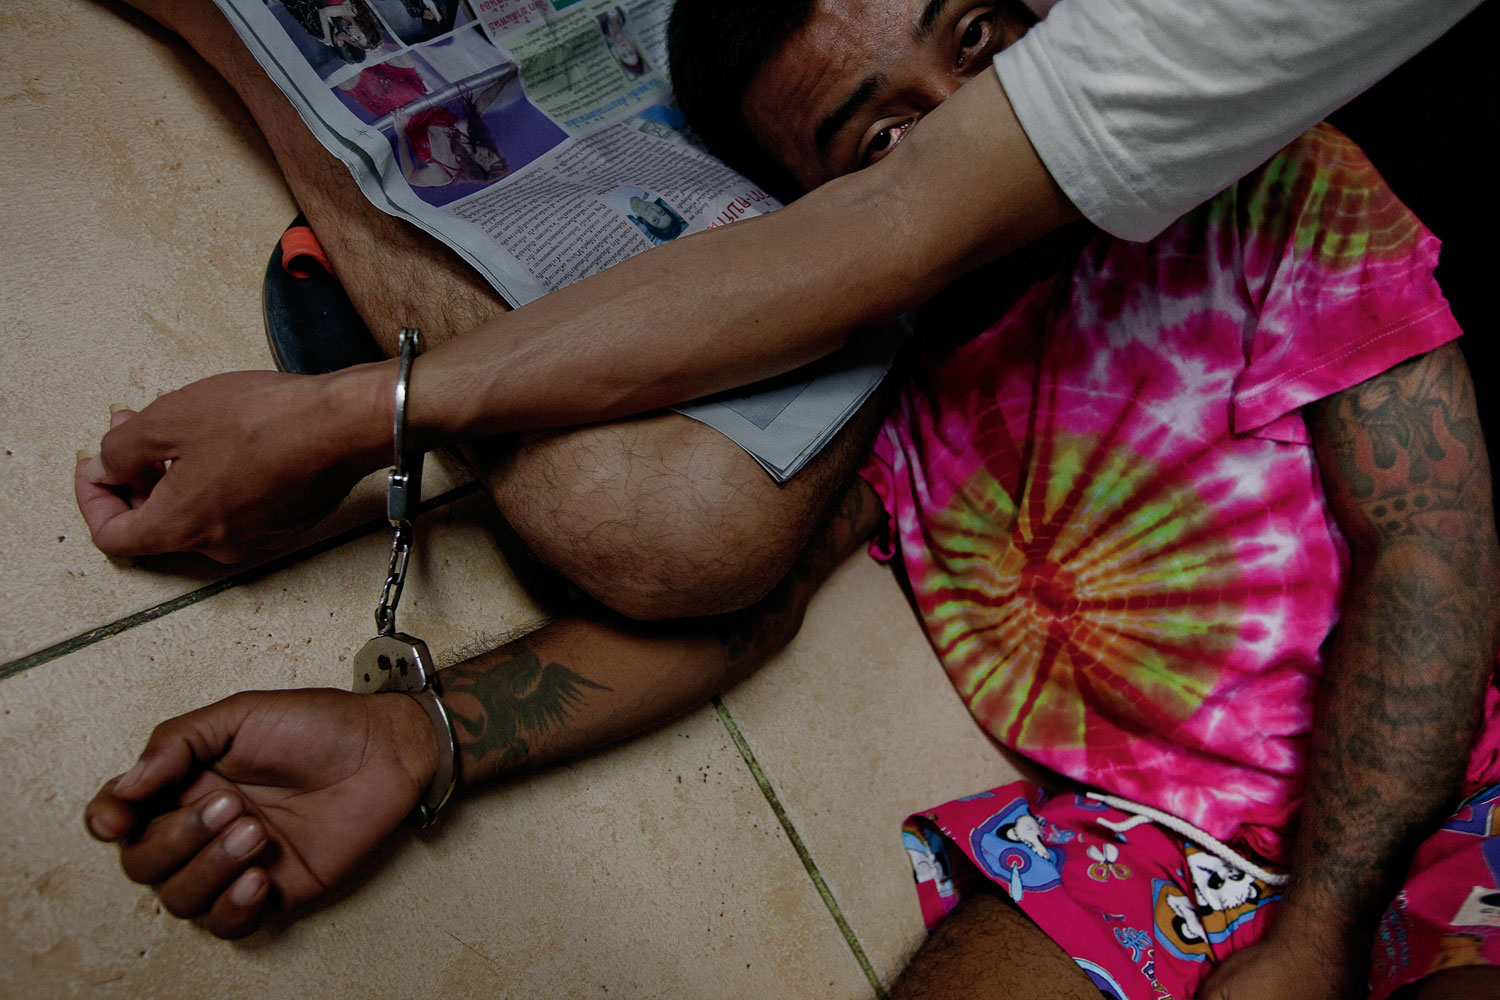 A raid on suspected meth dealers and users in Thailand's Pattaya City.